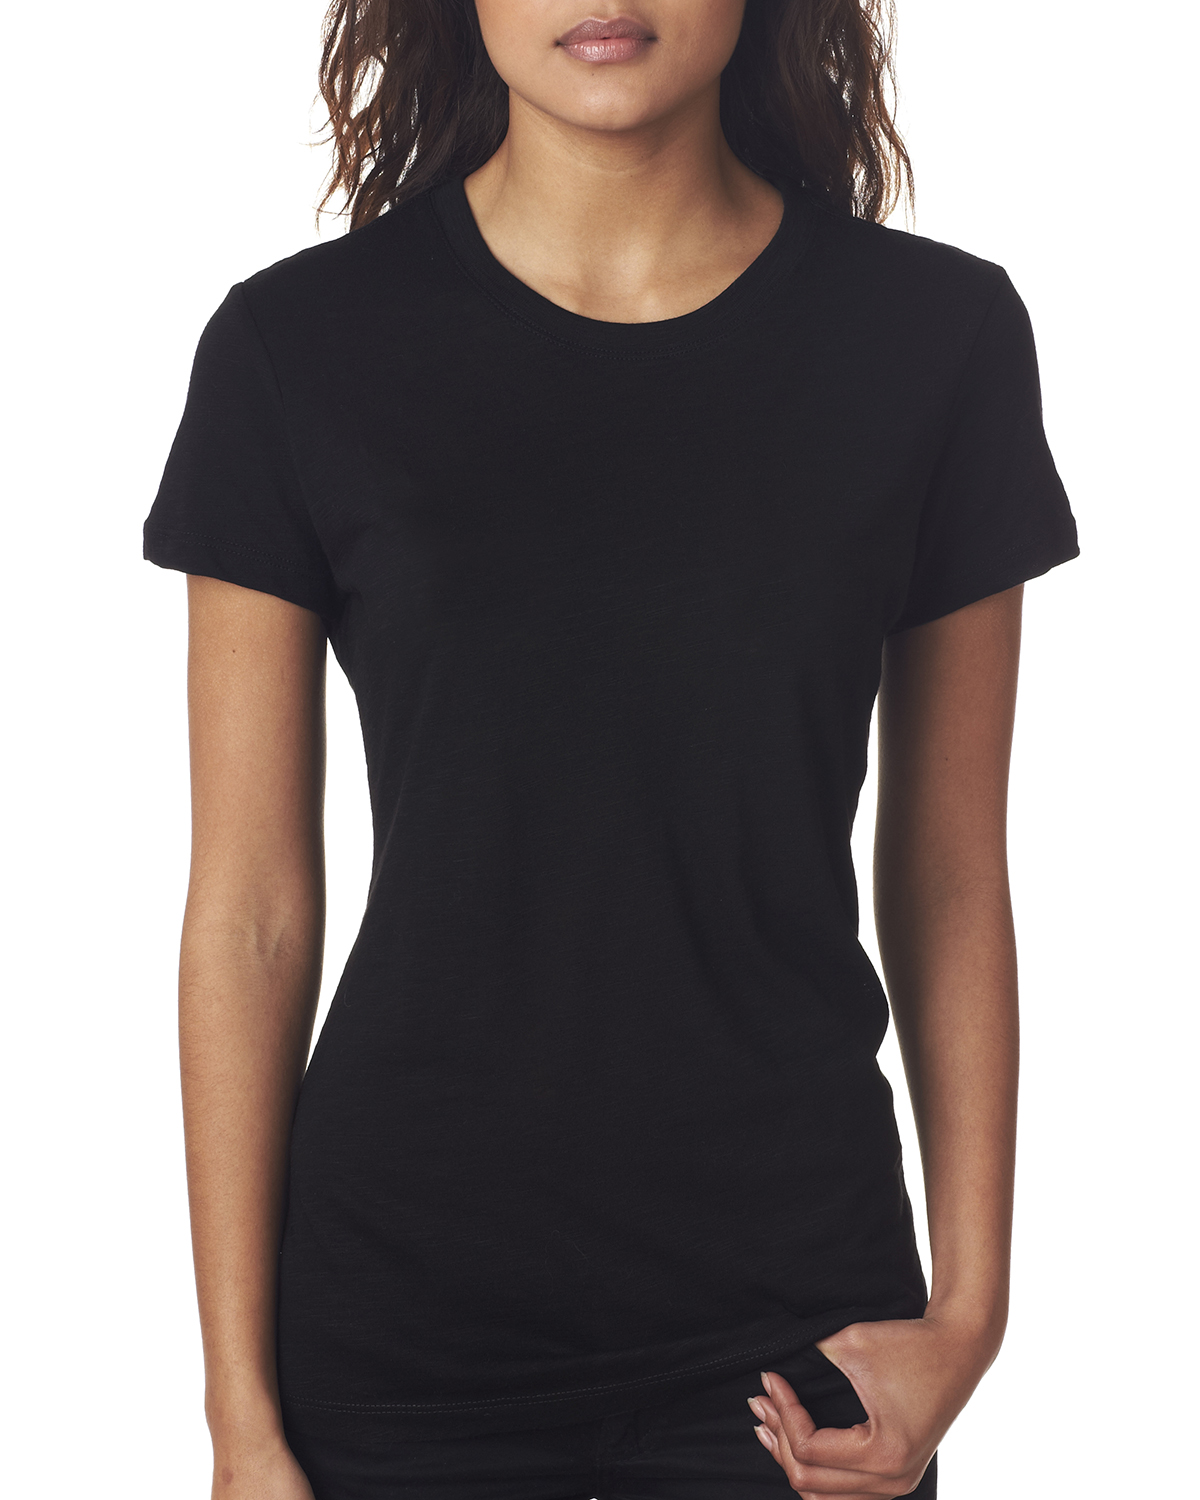 Next level 6840 the slub cross over v tee women for Womens black tee shirt